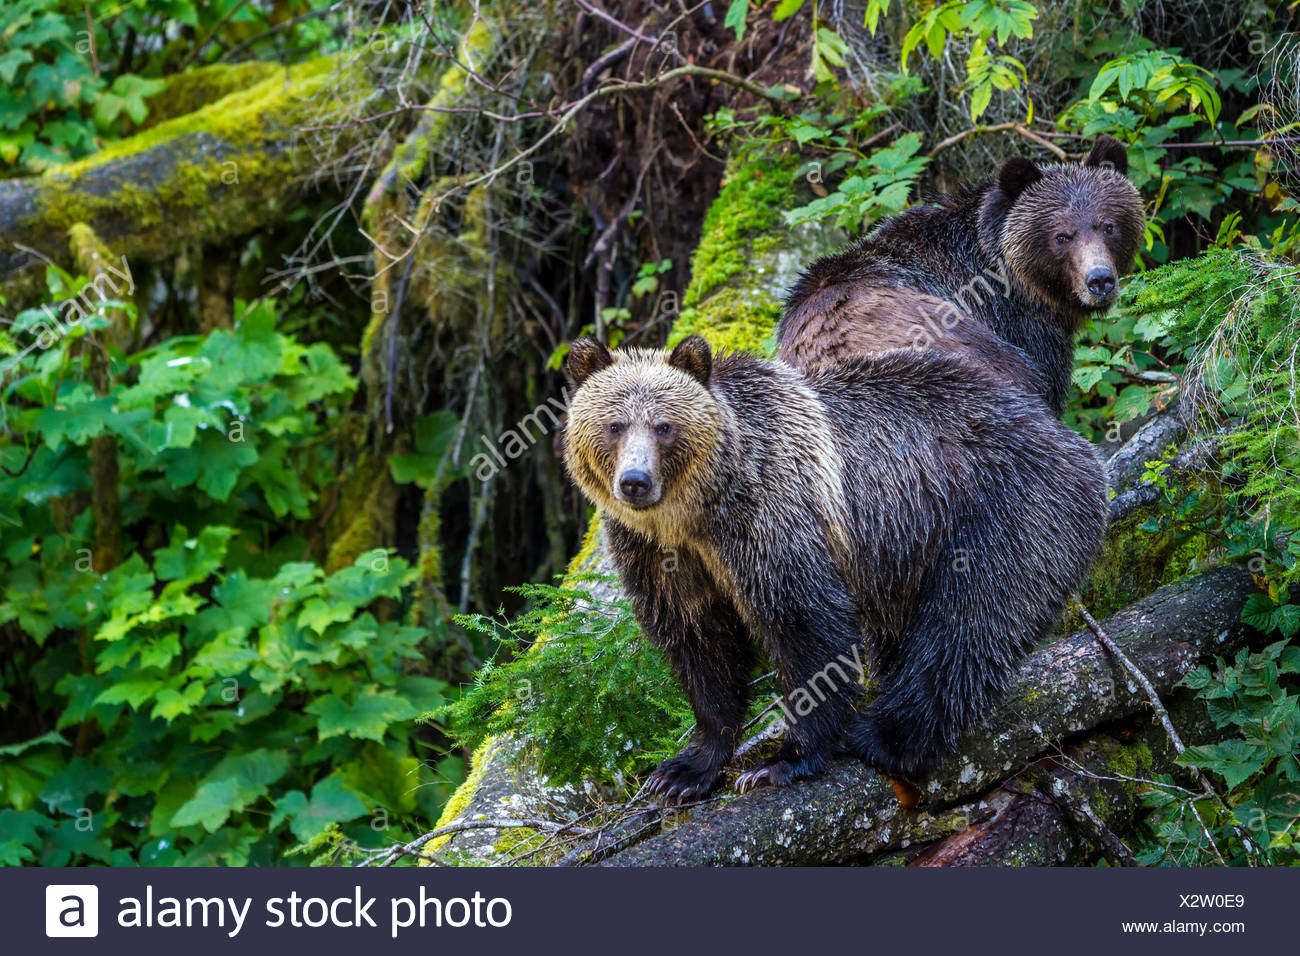 Grizzly Bear cubs standing on a fallen tree along Knight Inlet in British Columbia, Canada. Stock Photo